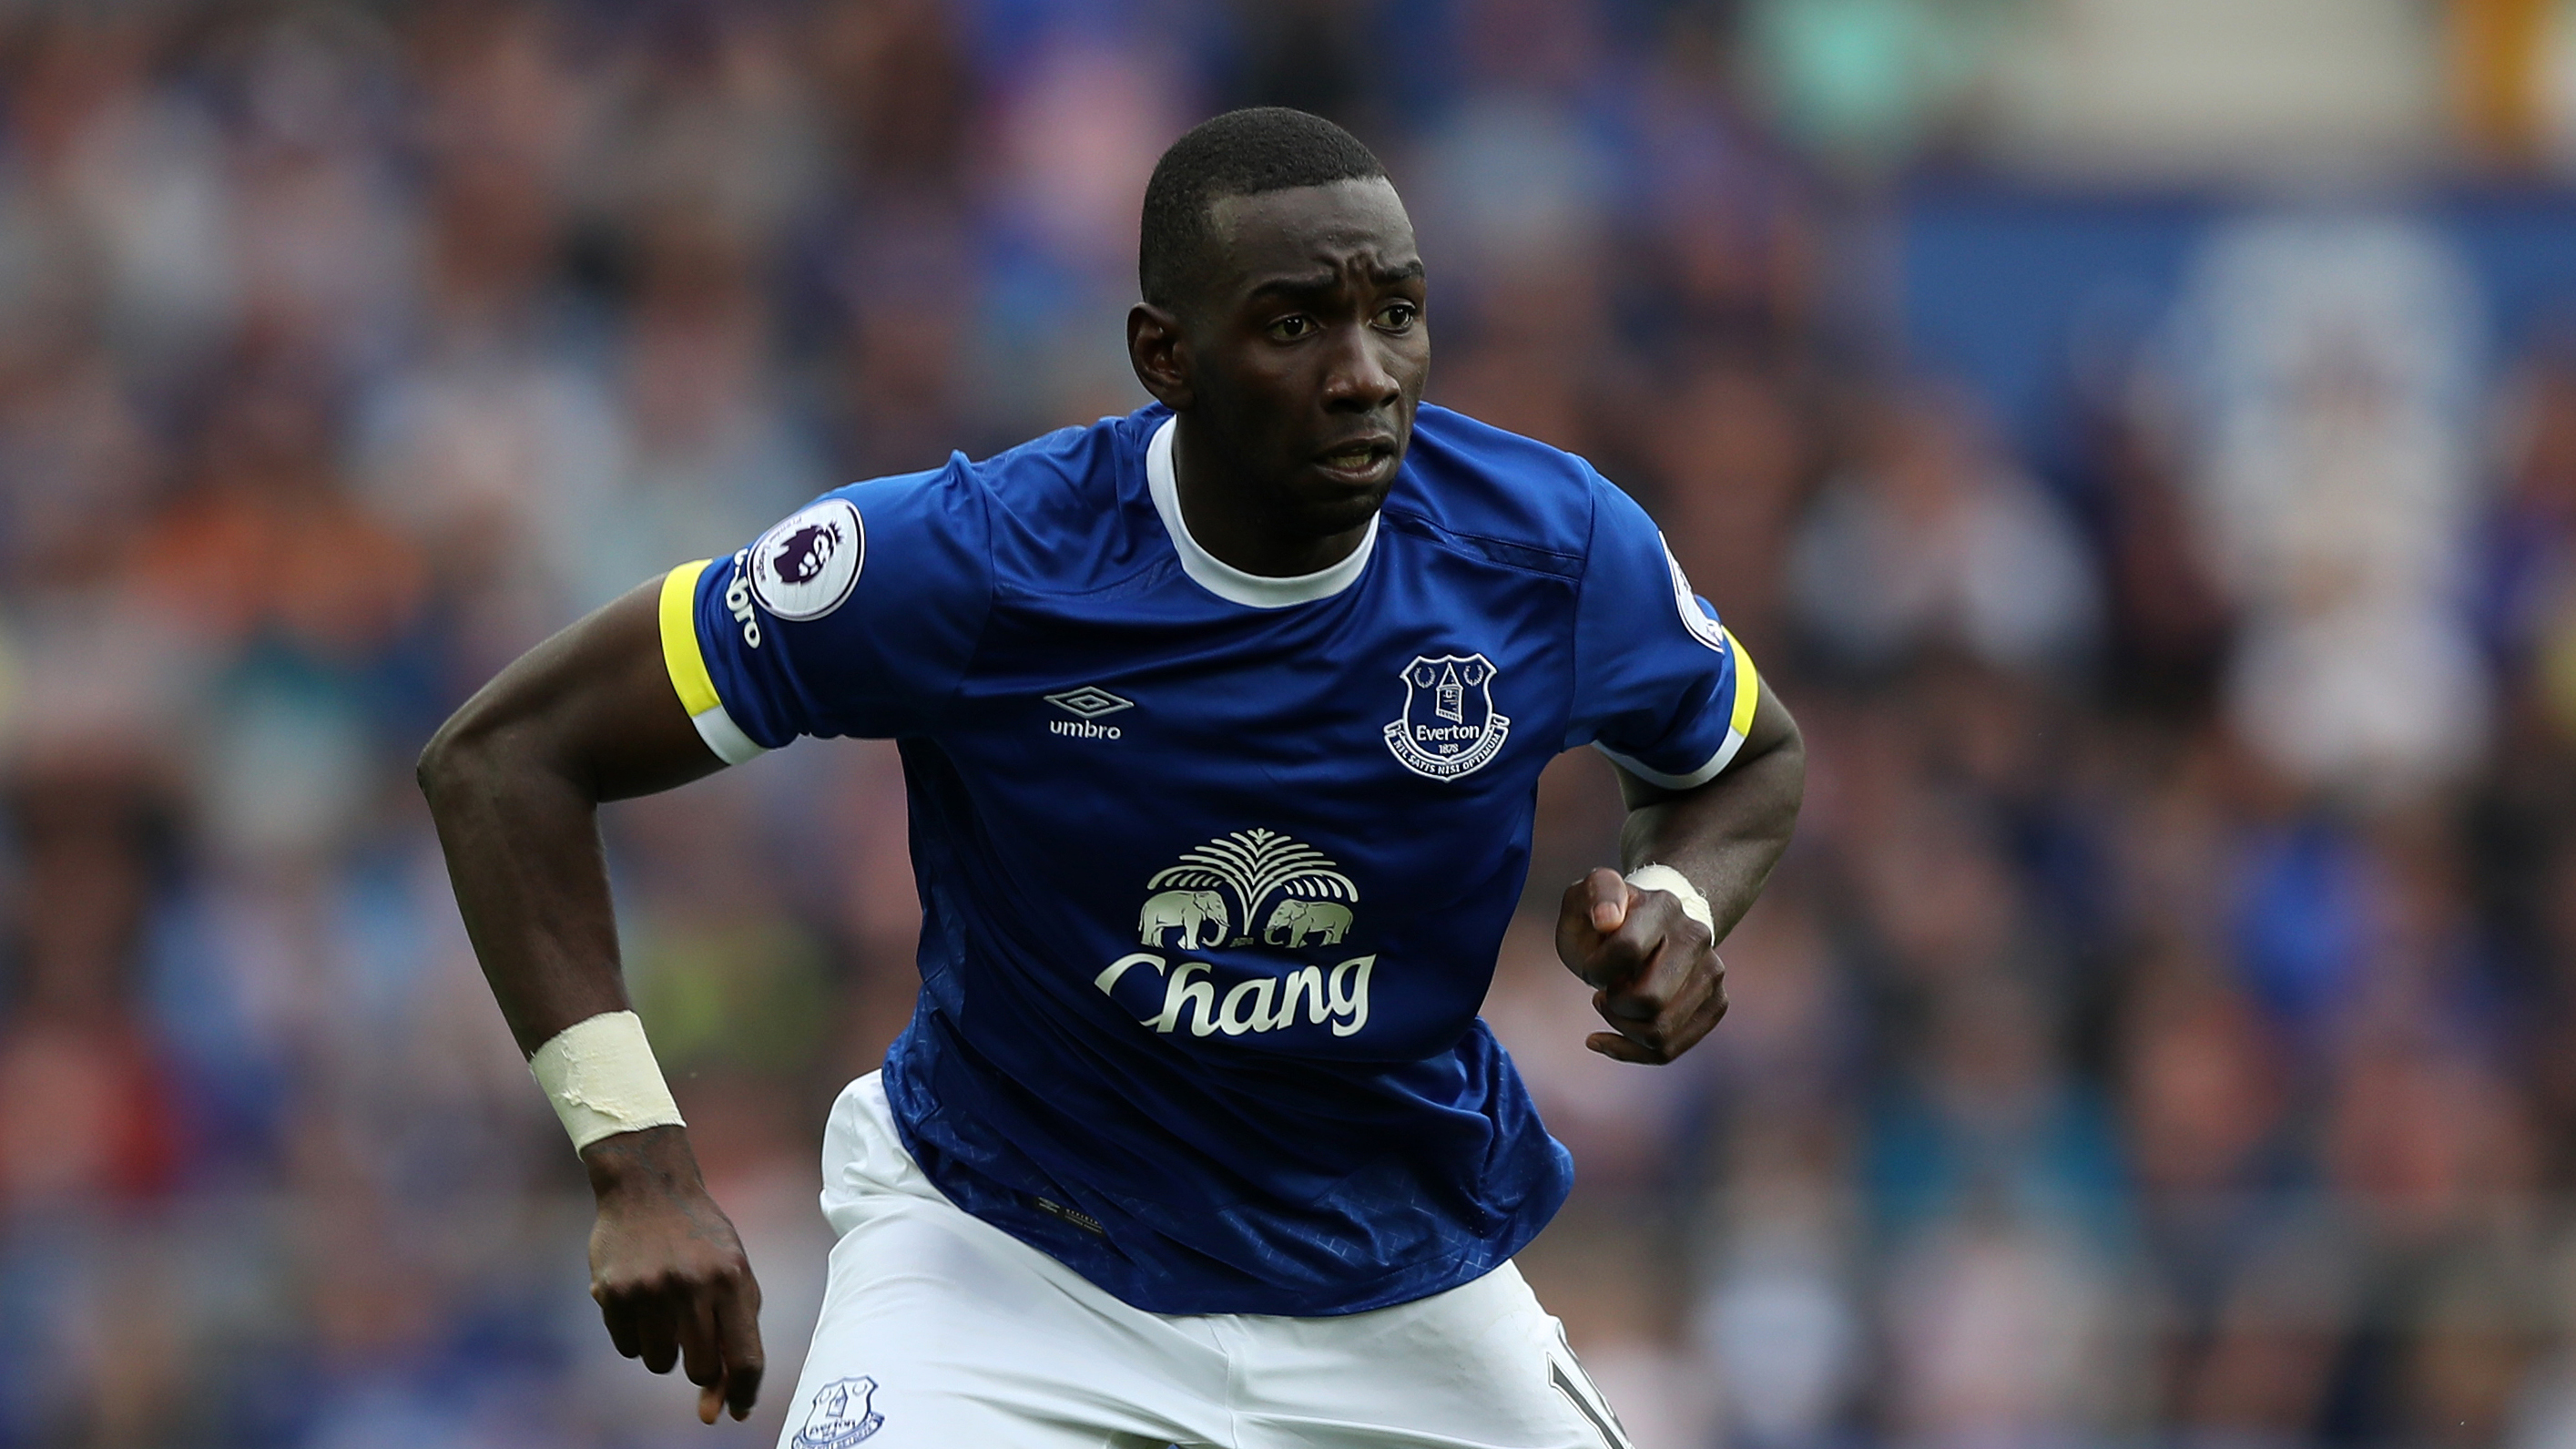 Everton v Sunderland preview: Both sides set to make changes